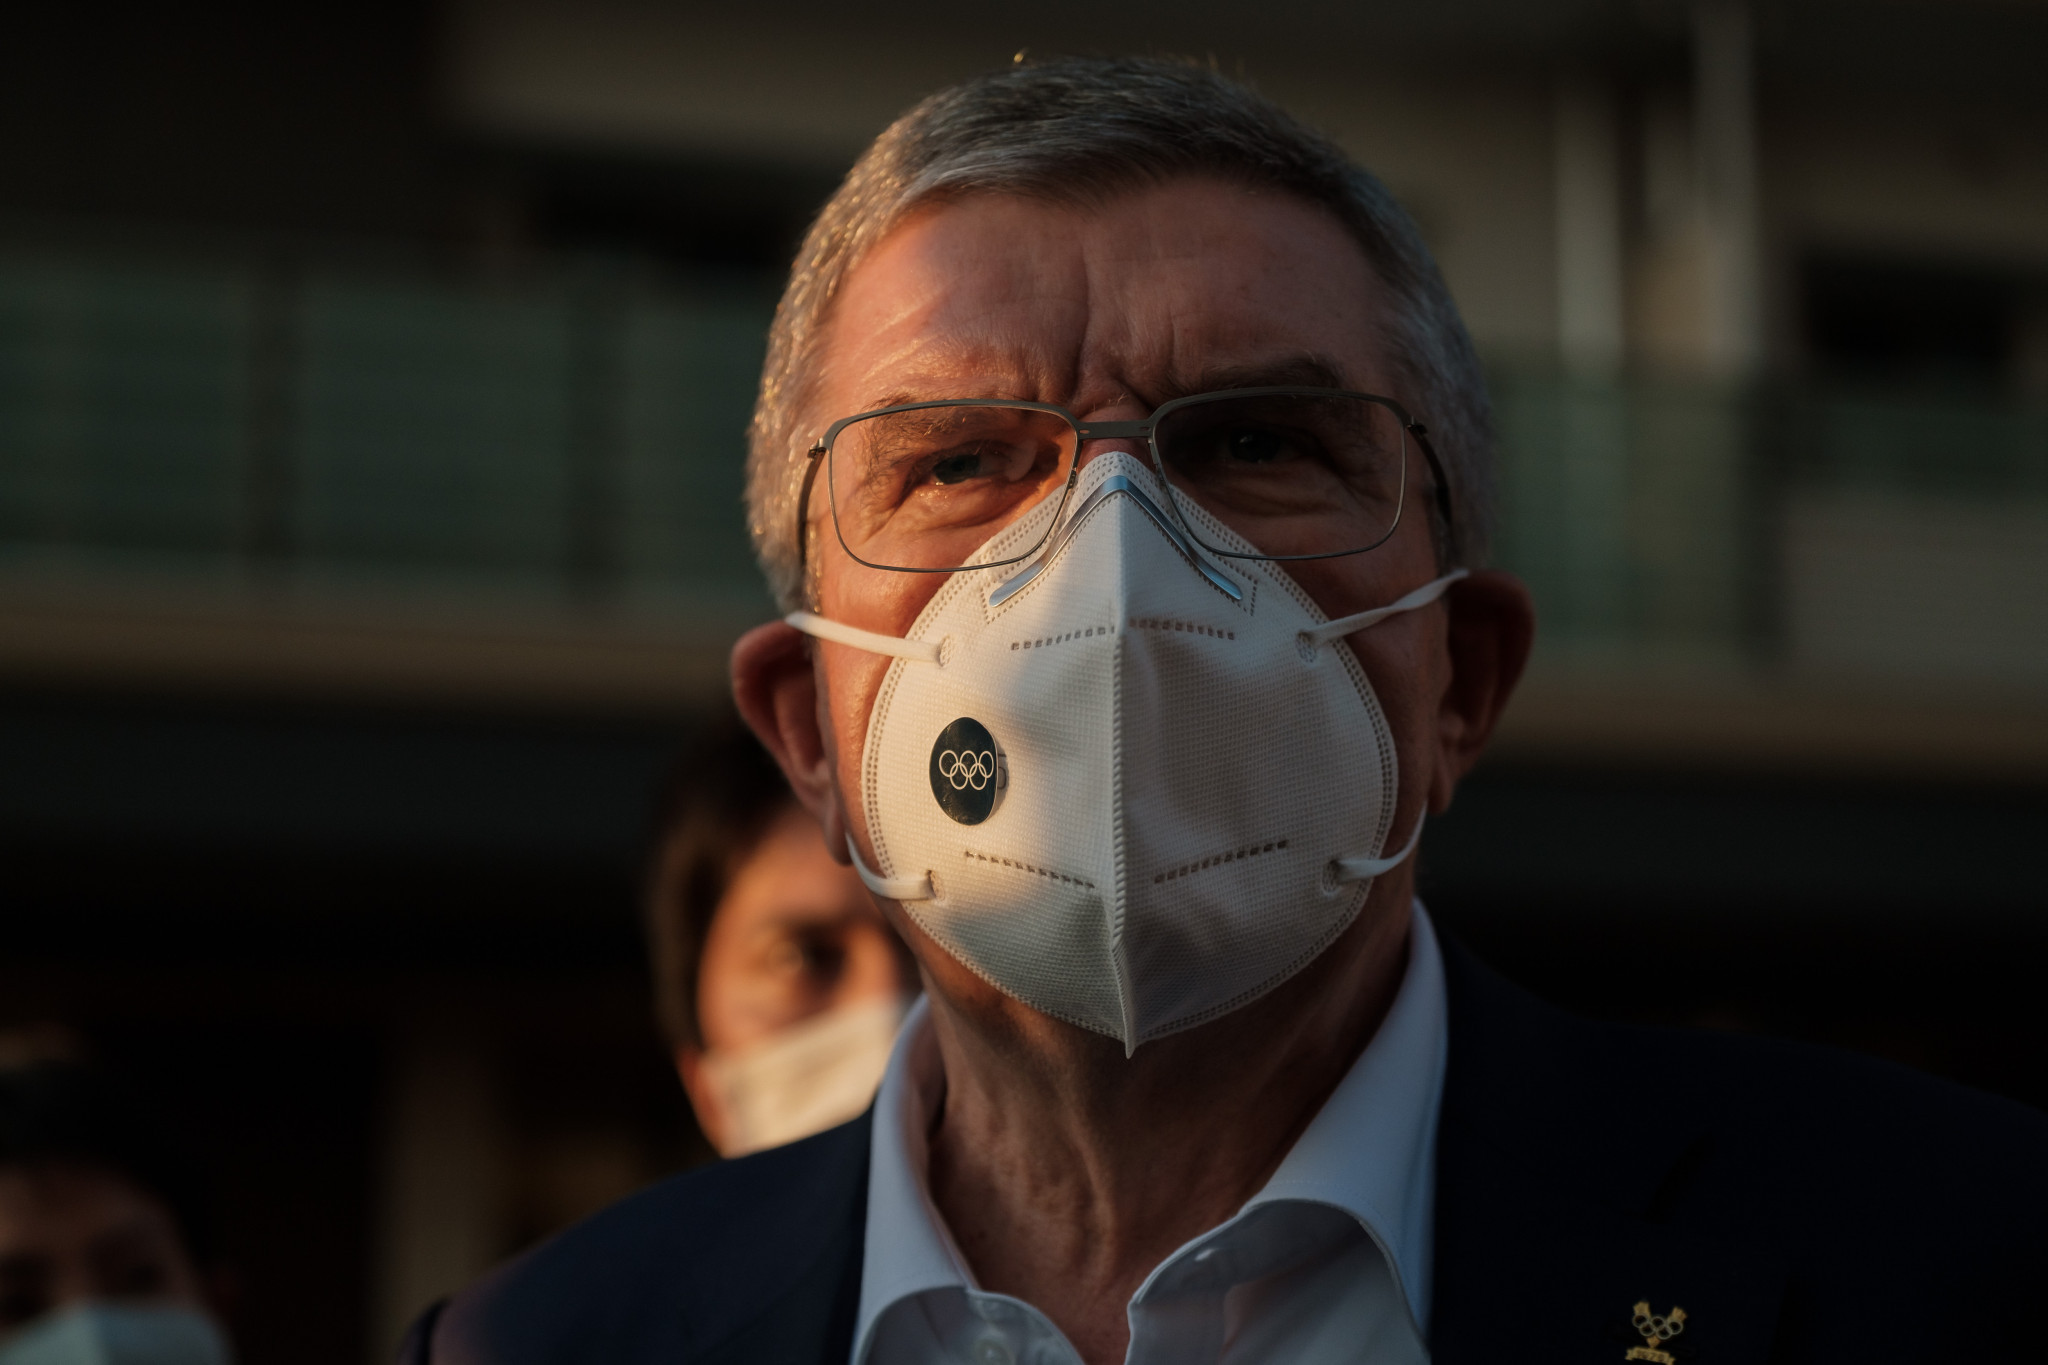 Thomas Bach's visit to Tokyo came coupled with warnings not to sightsee during the Olympics ©Getty Images